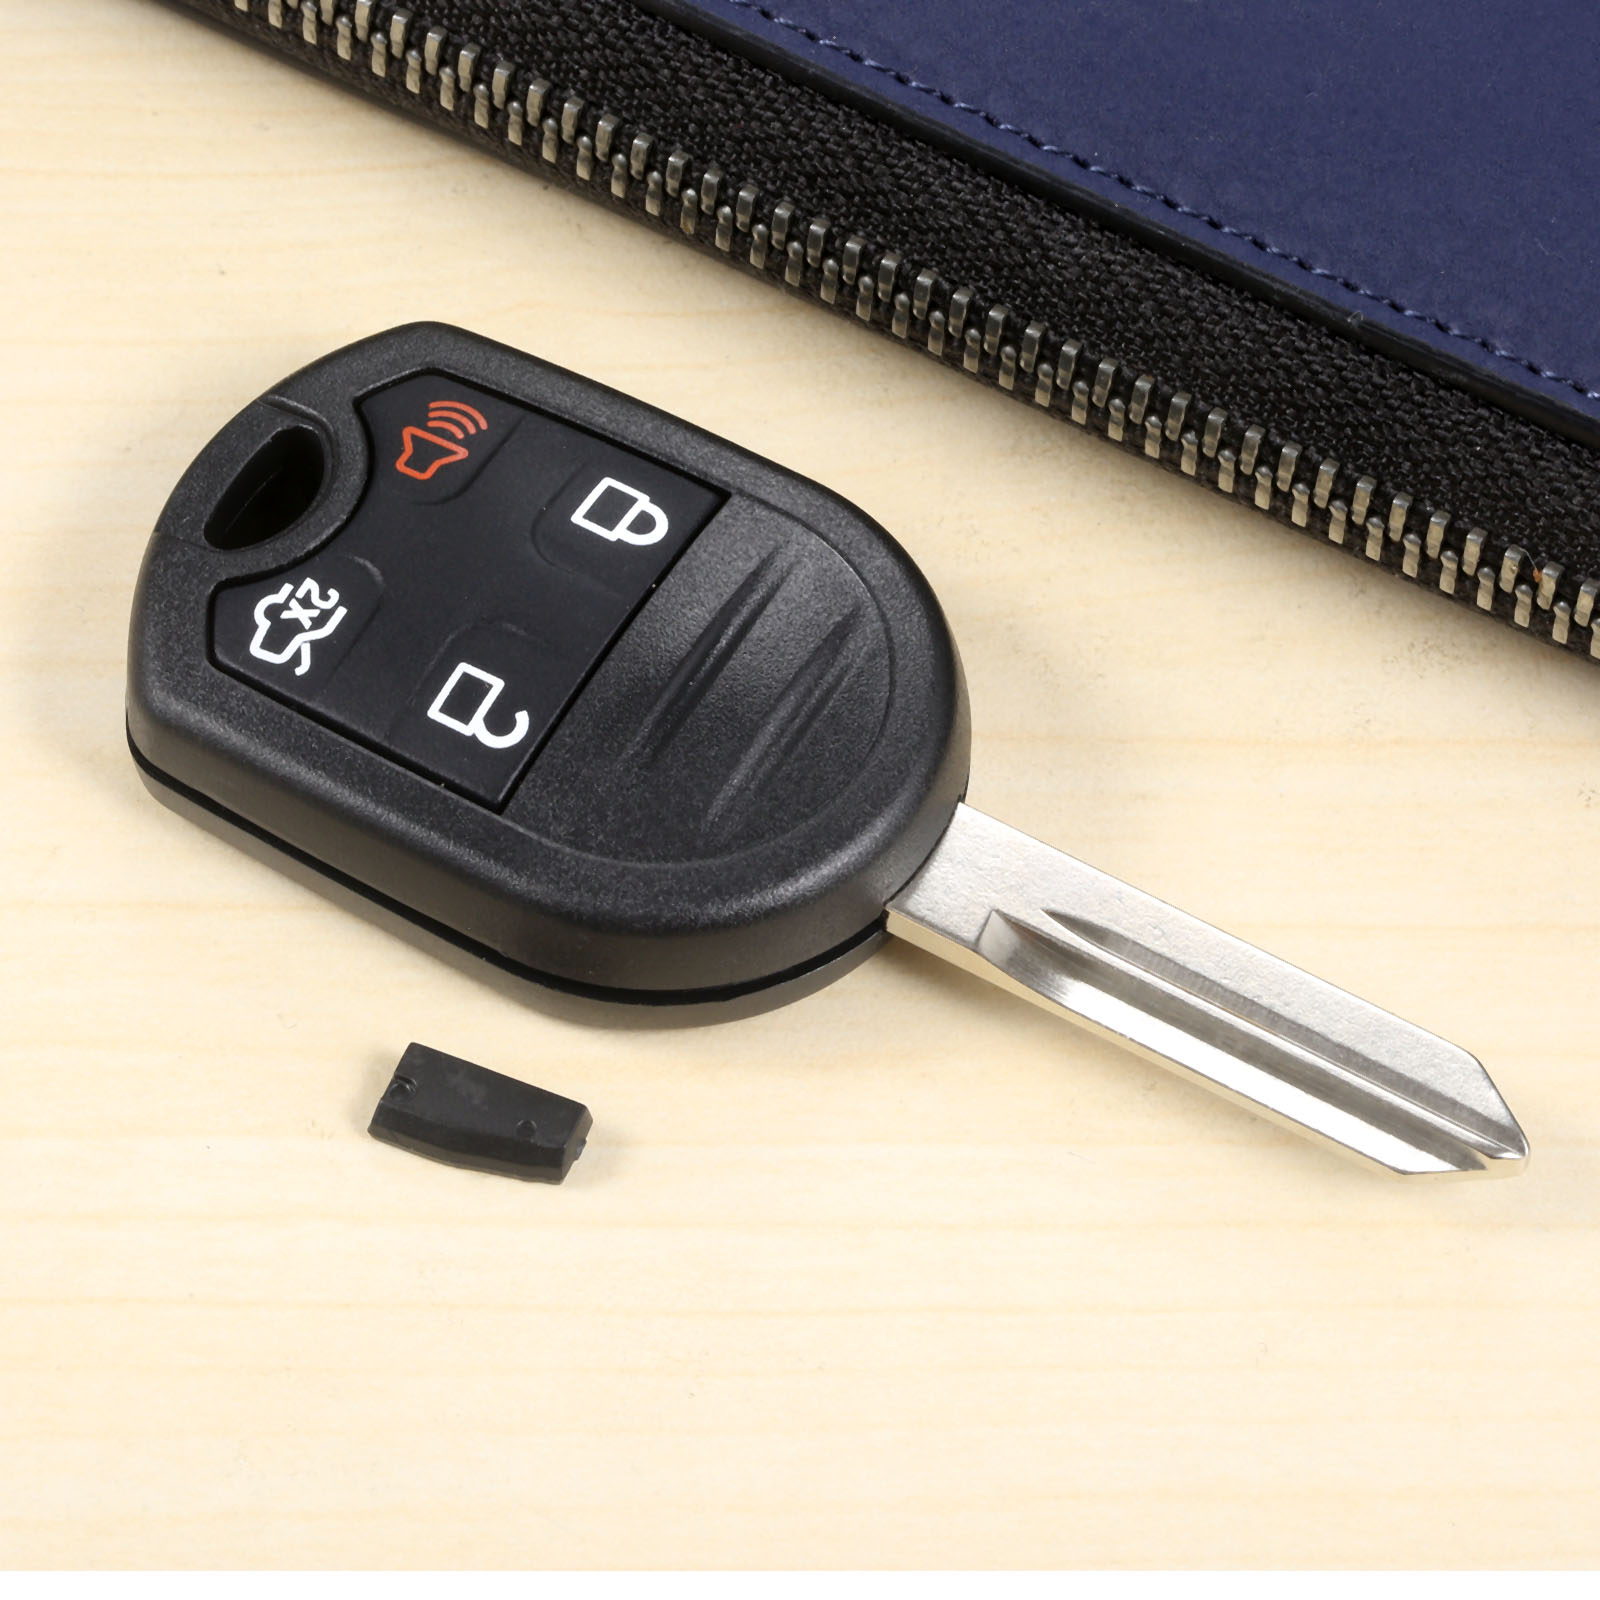 4 Buttons 315Mhz CWTWB1U793 4D63 Chip Fob Remote Key For 2011-2016 Ford F-150 F-250 F-350 Explorer Auto Parts